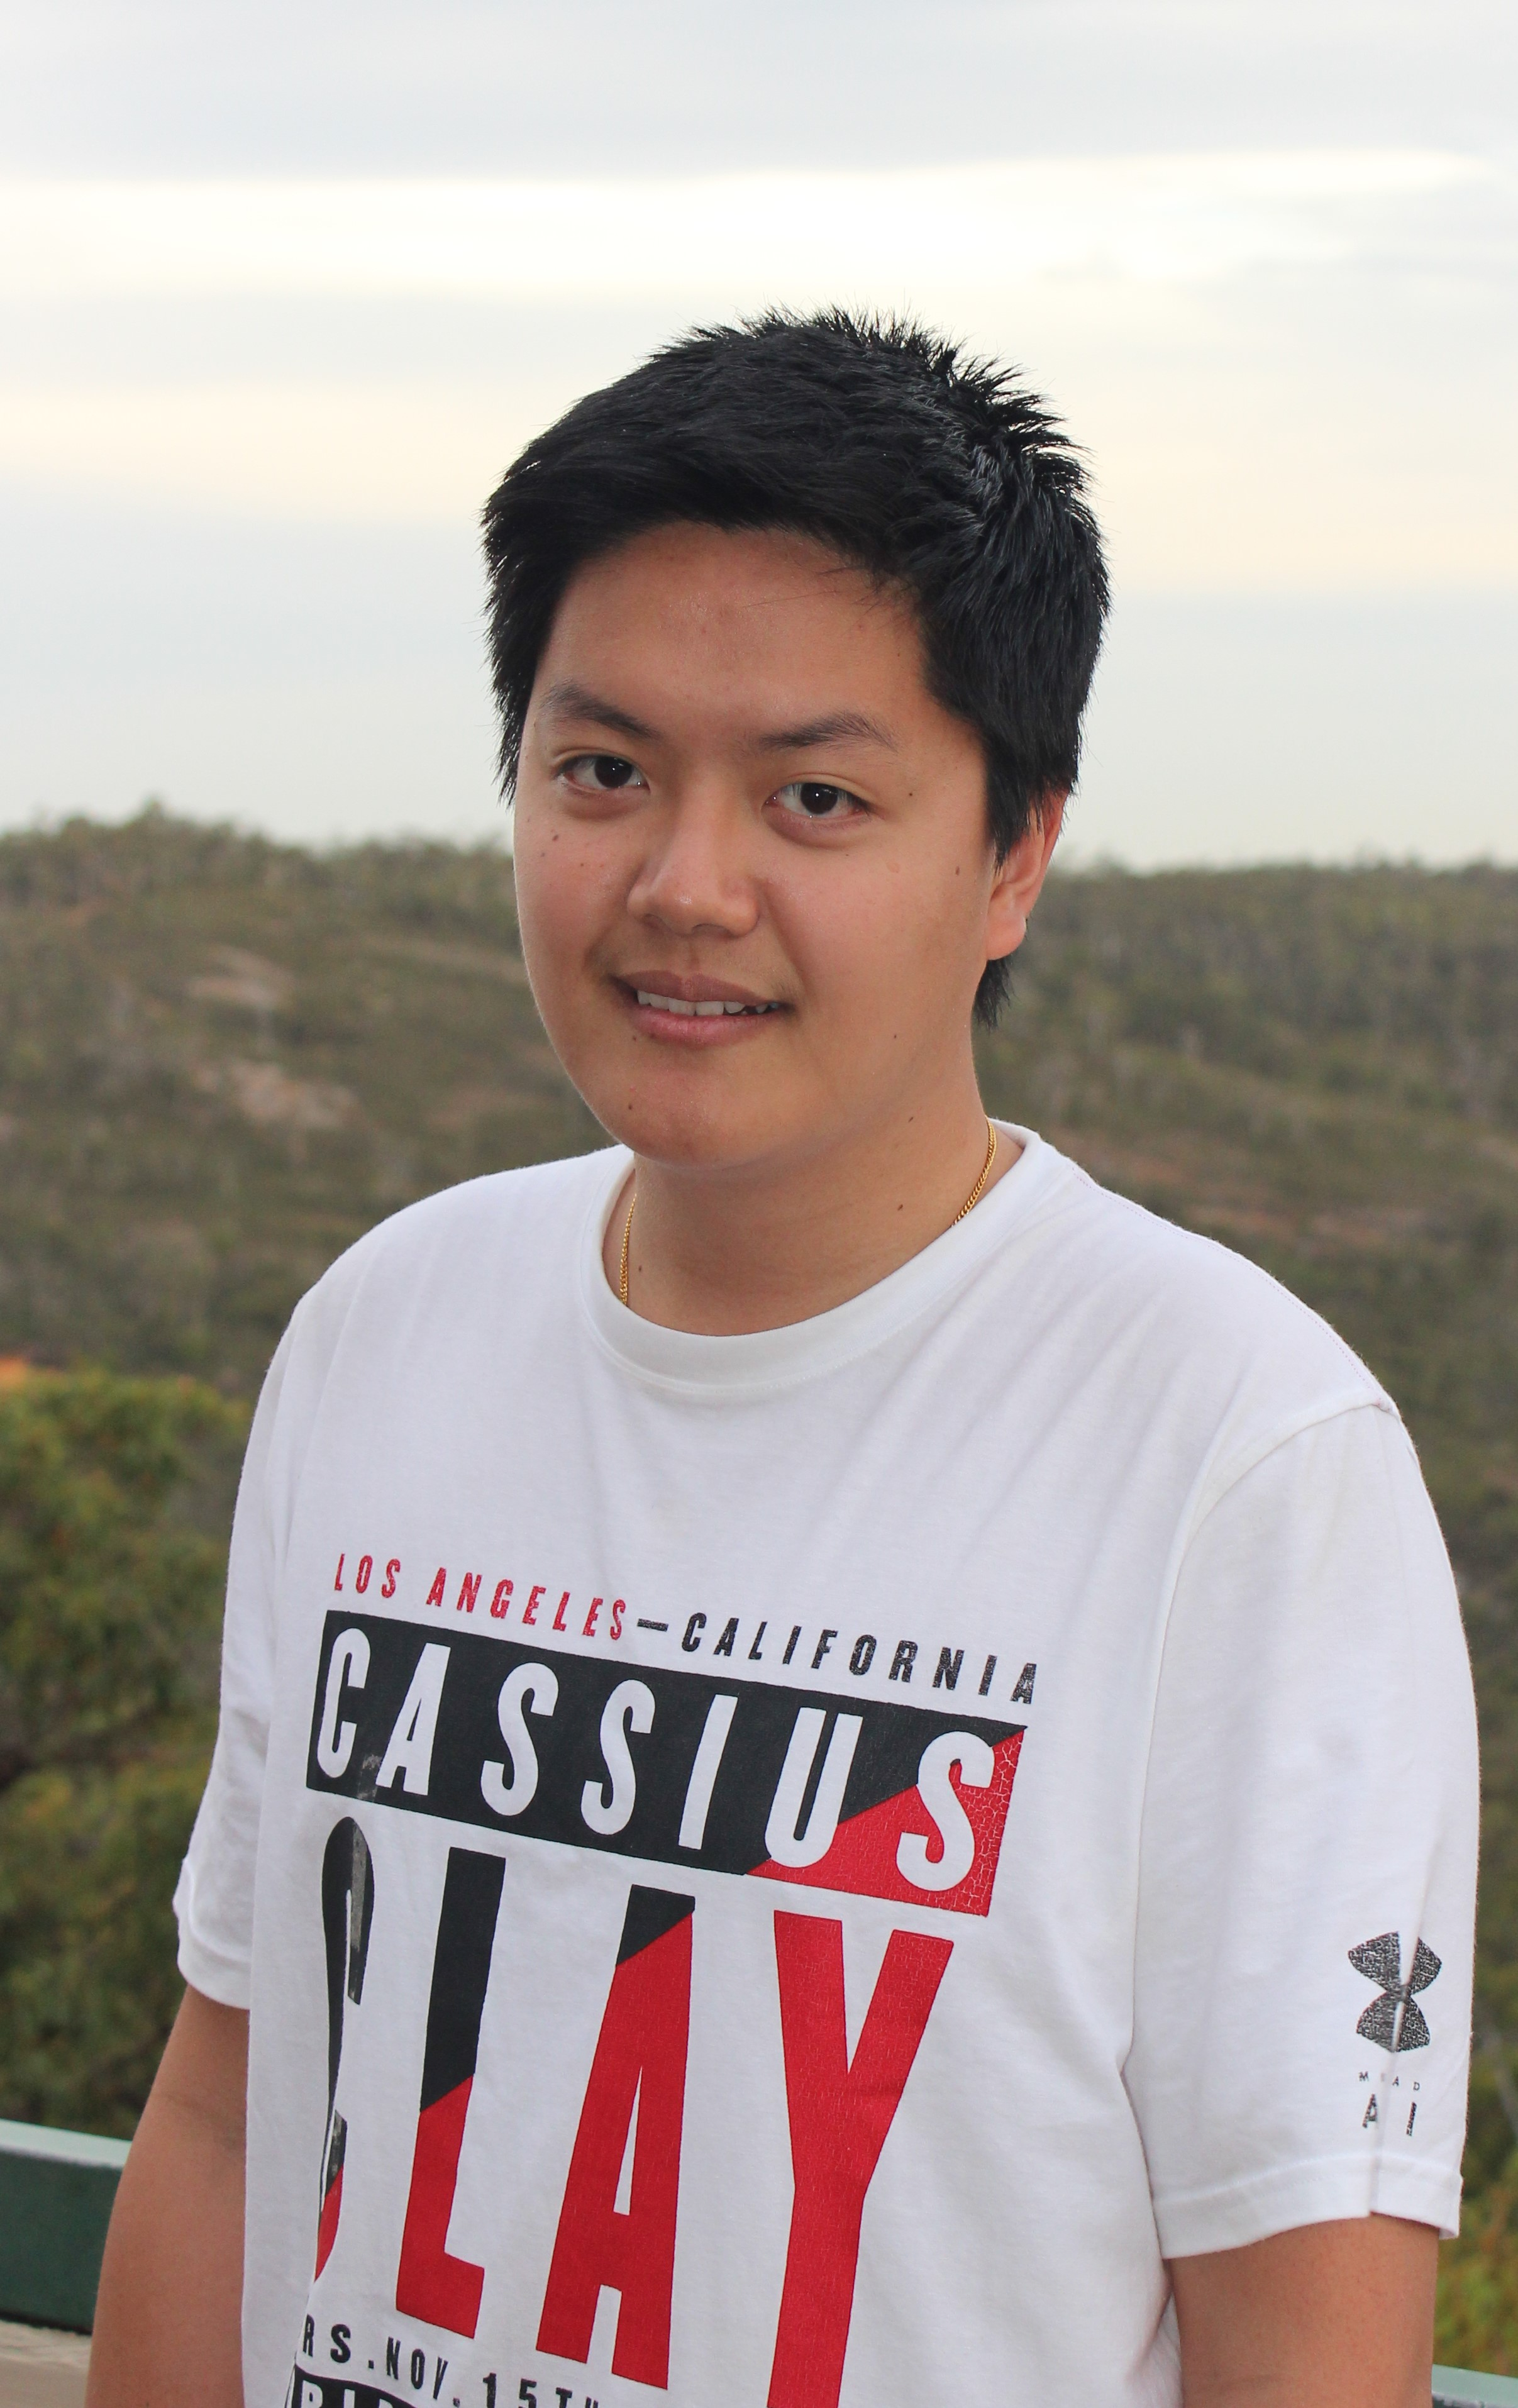 My name is Kenji and I'm from Mauritius. This year will be my fourth year at St George's and first year as RA. I study Engineering but can be found playing soccer all over the place, at uni and at College. Really looking forward to this year especially as an RA, and it will be a good one for sure!